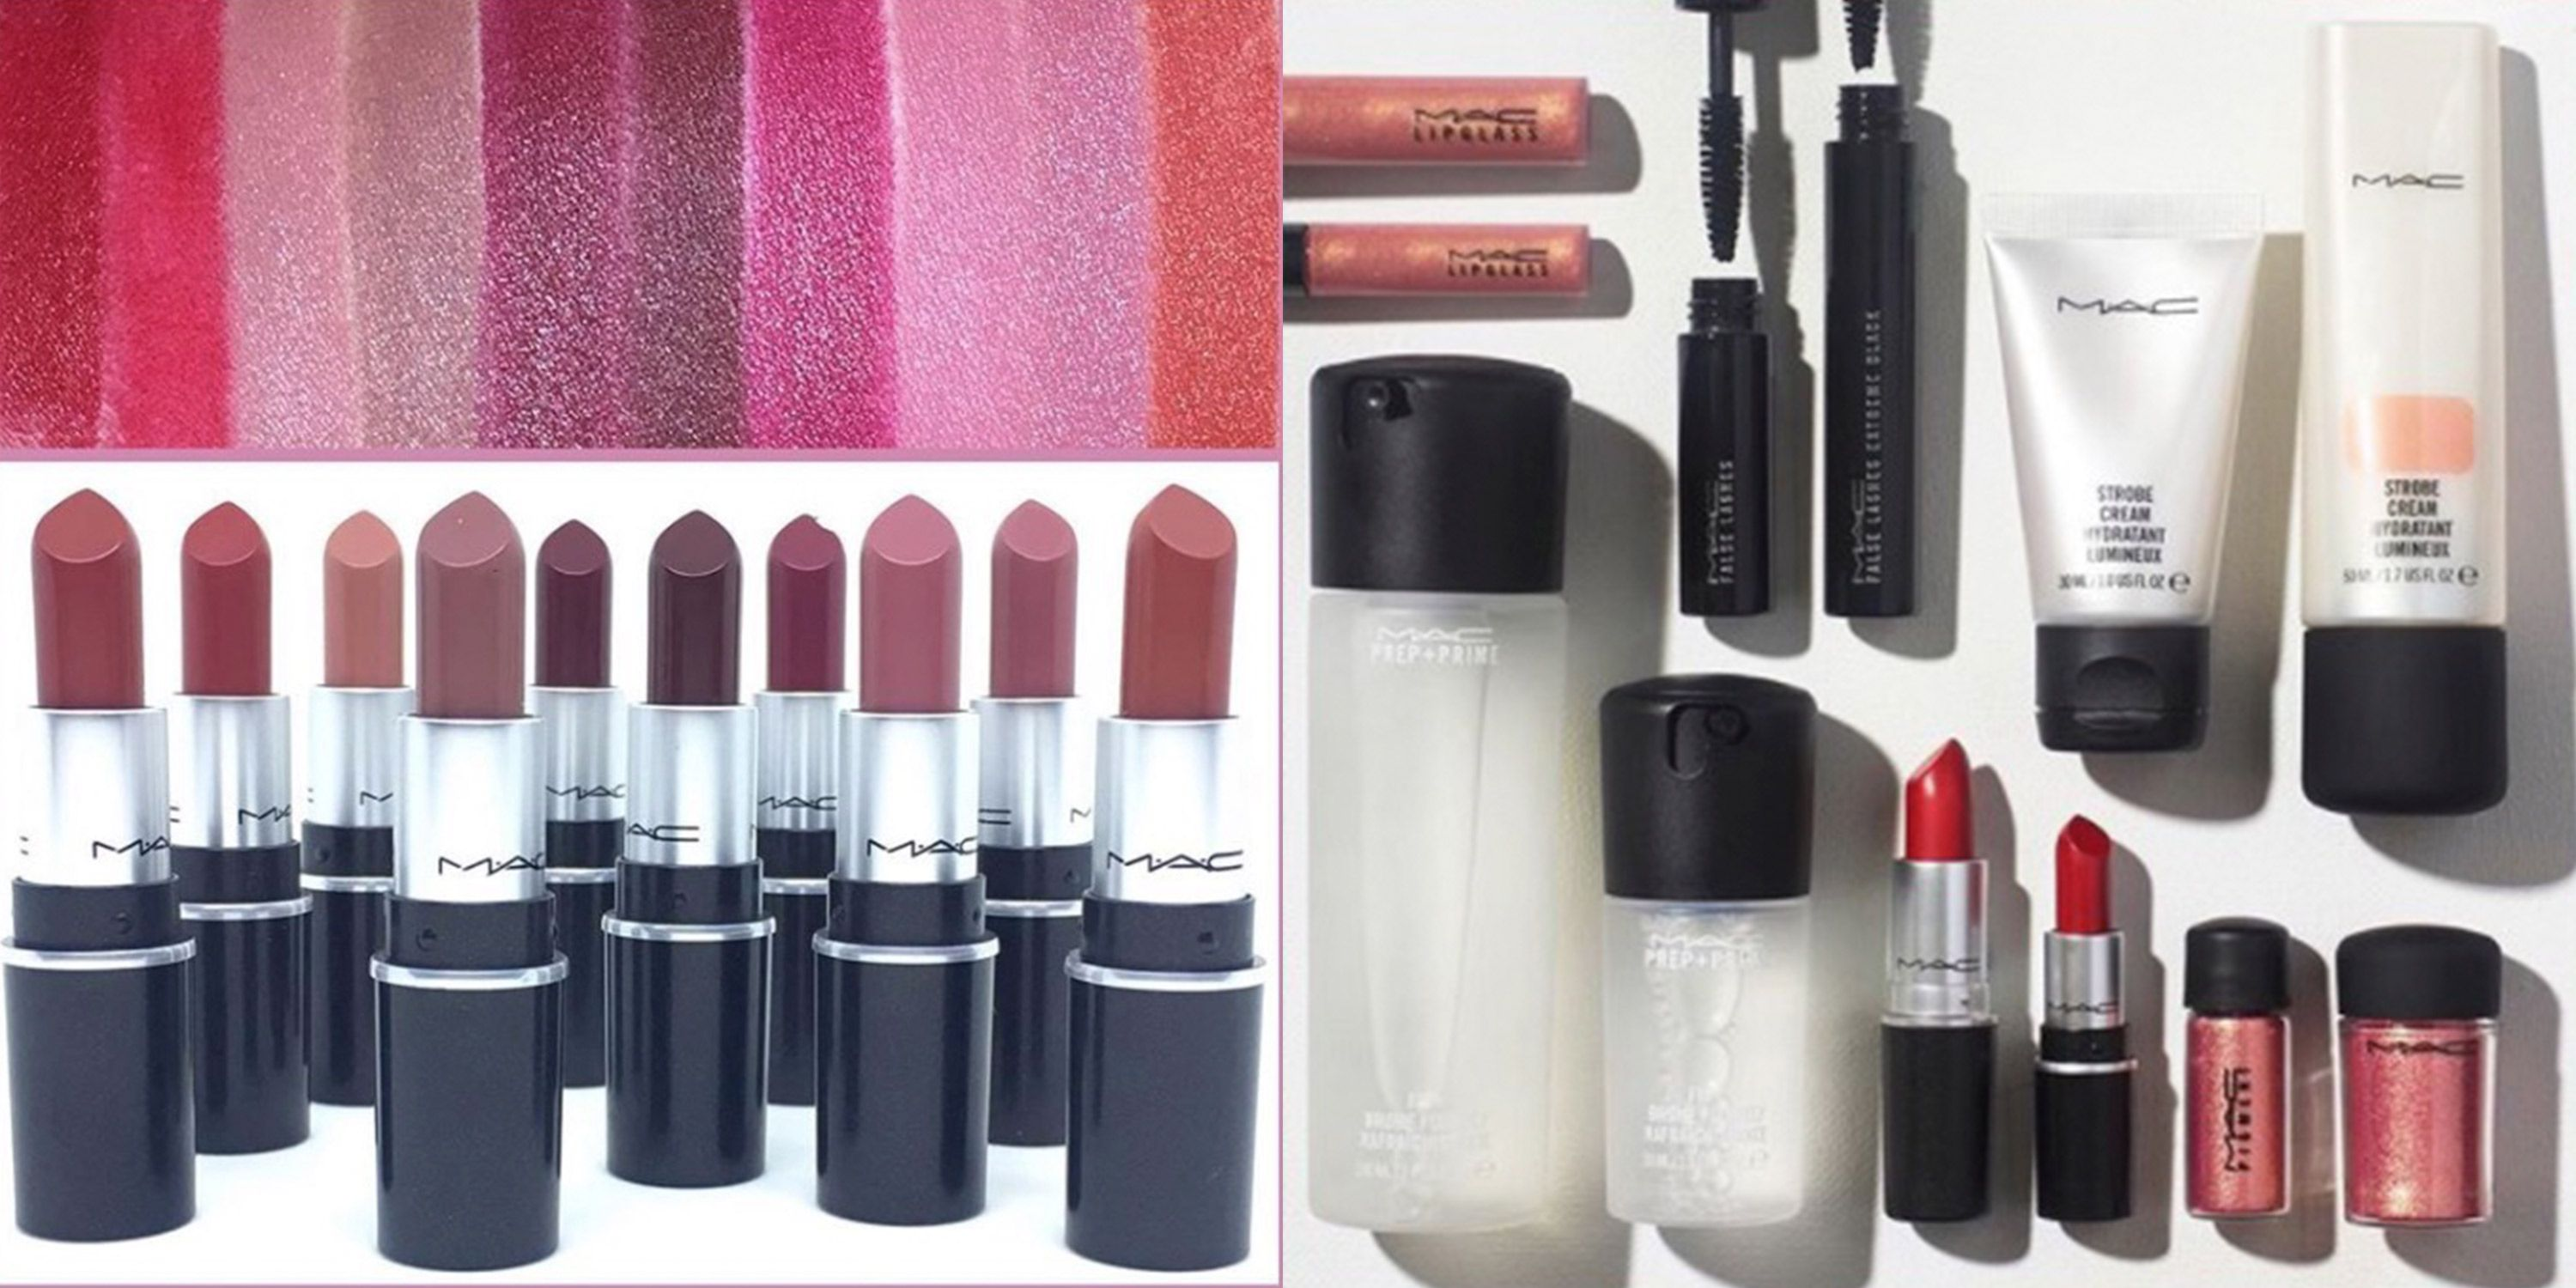 MAC is launching mini versions of their best-selling makeup products